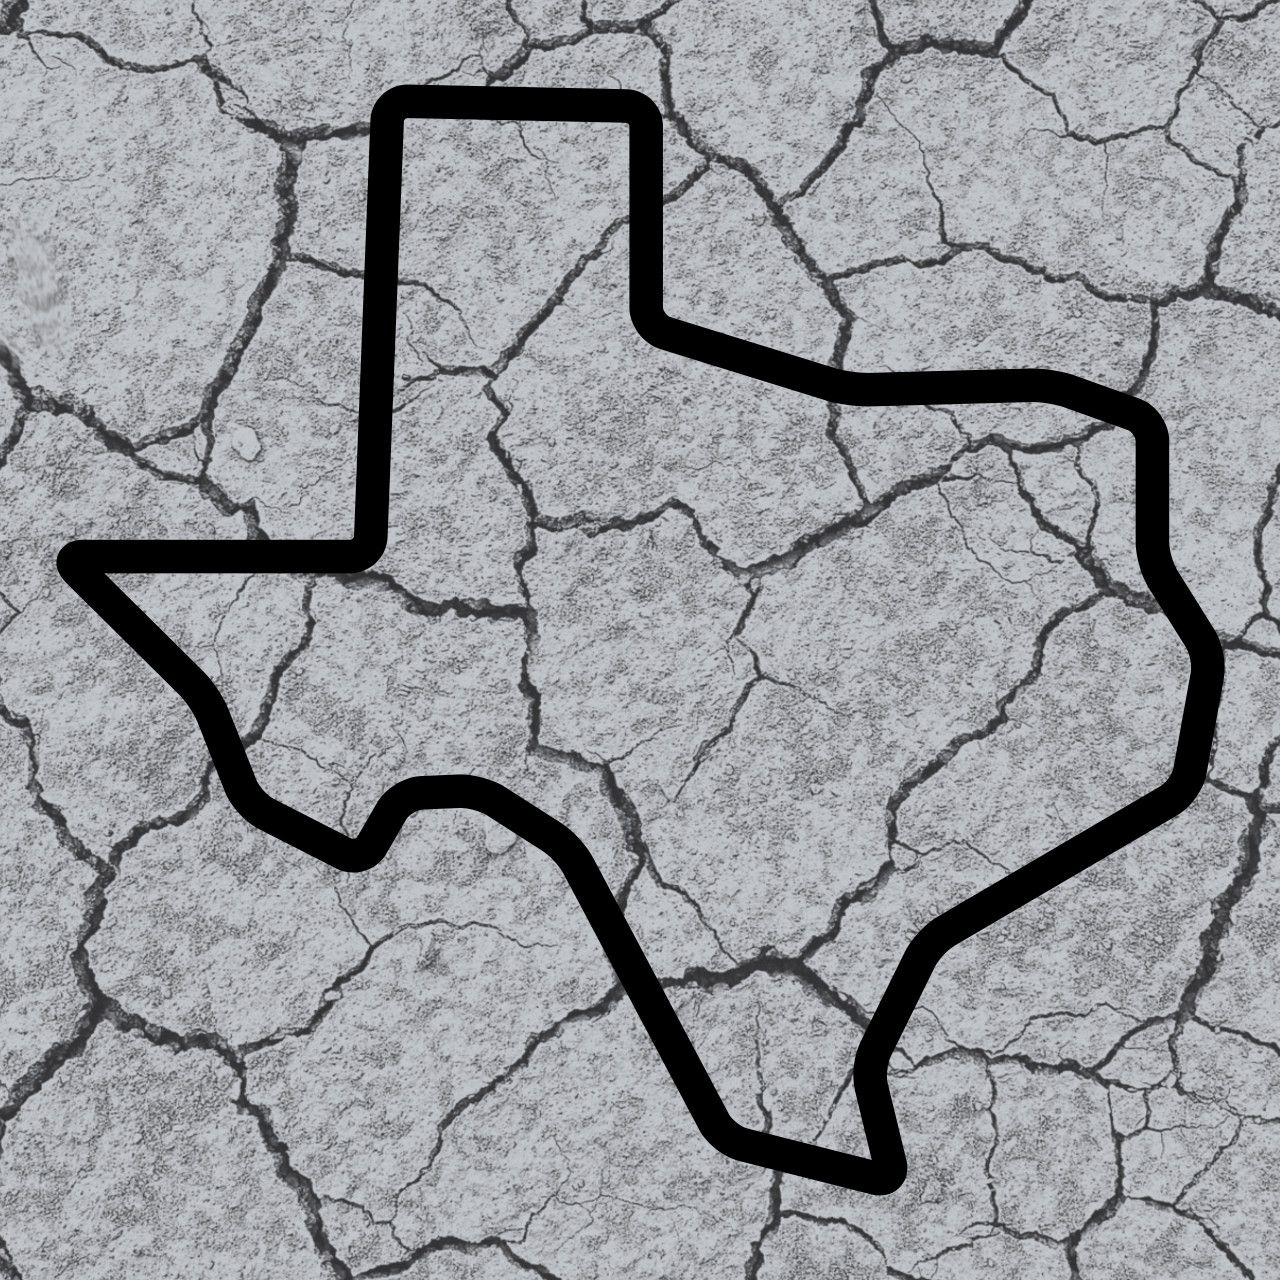 Abnormal dryness in Texas is affecting roughly 8.5 million